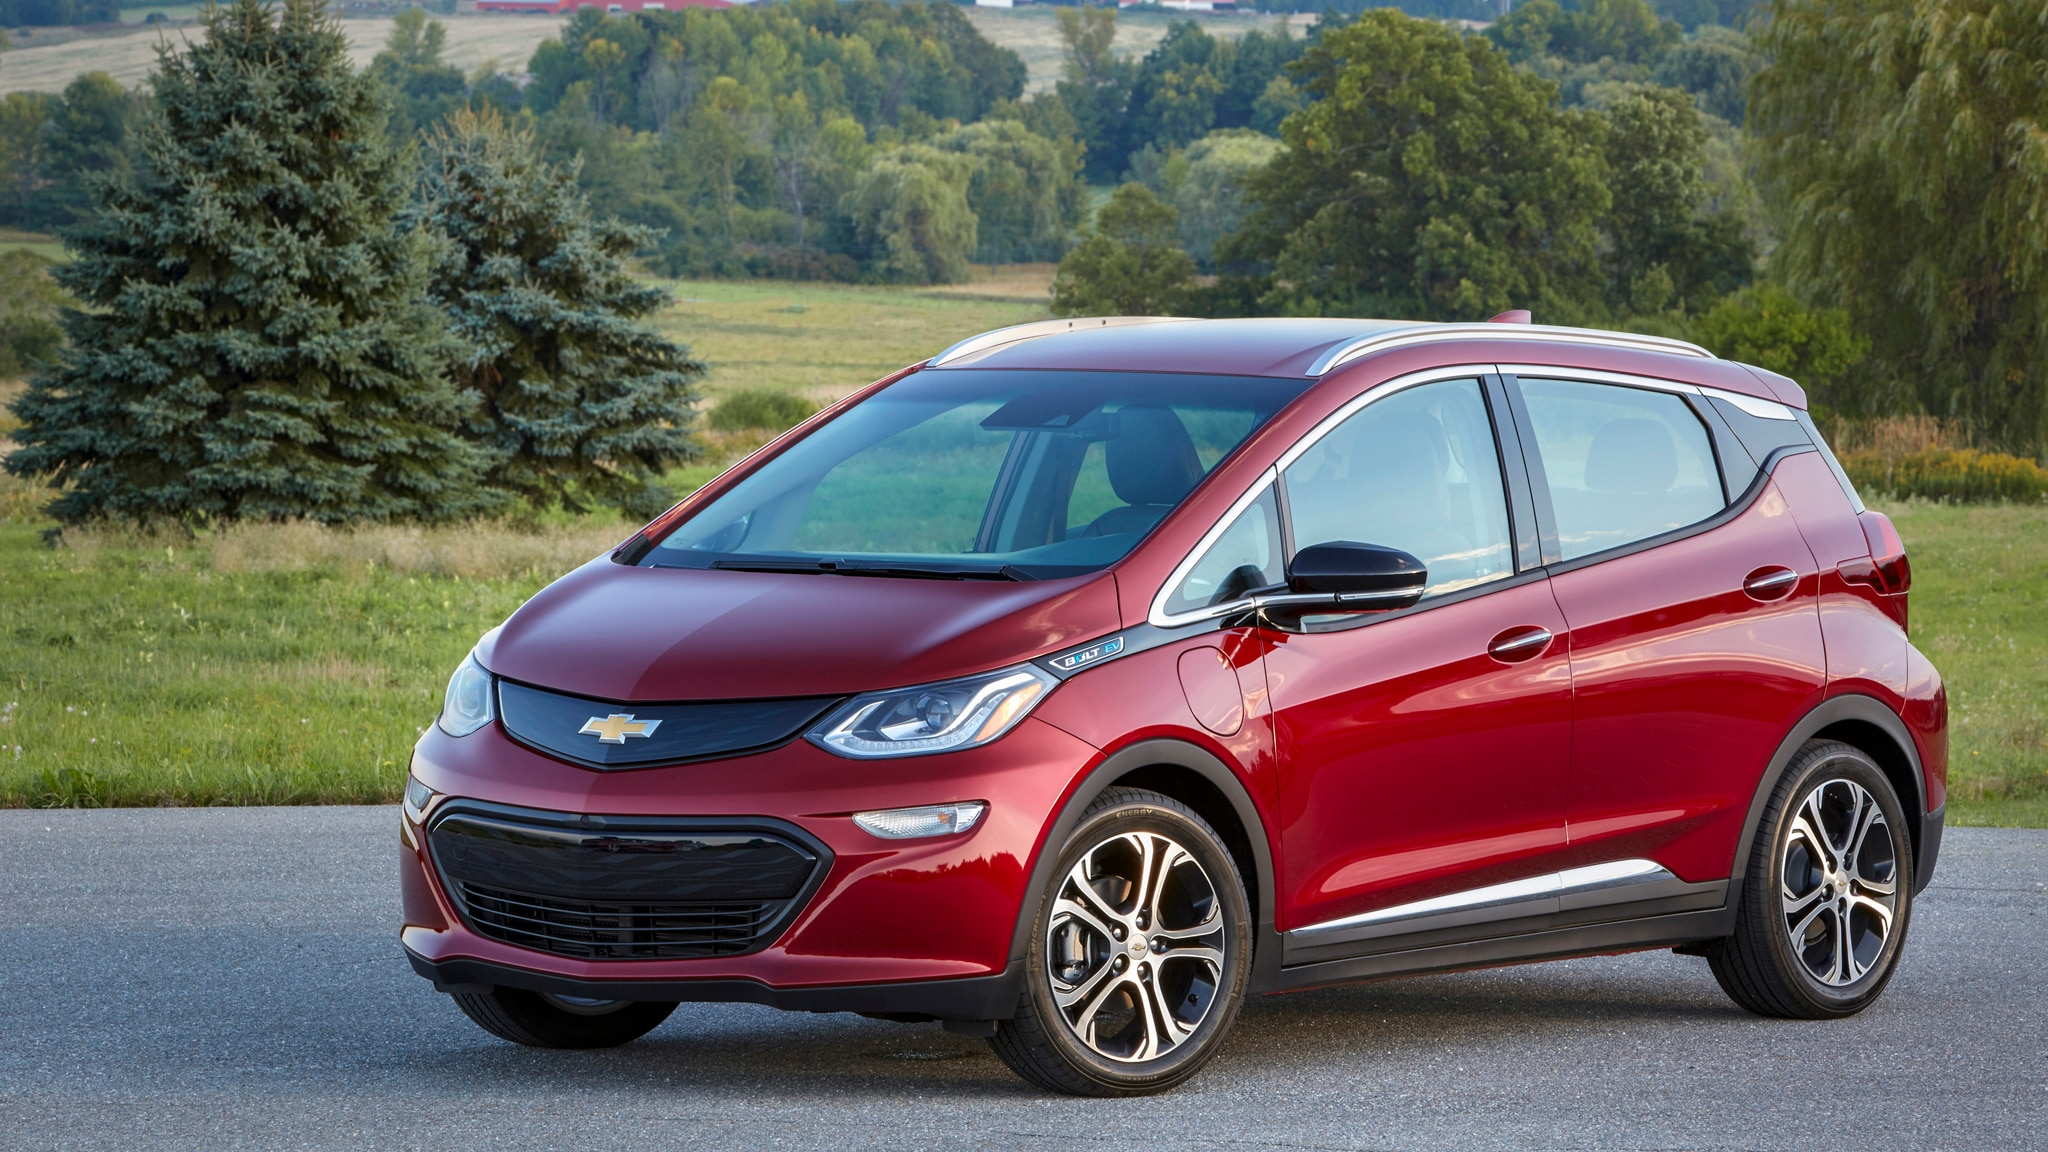 2019 chevrolet bolt ev and 2019 chevrolet volt phev review. Black Bedroom Furniture Sets. Home Design Ideas